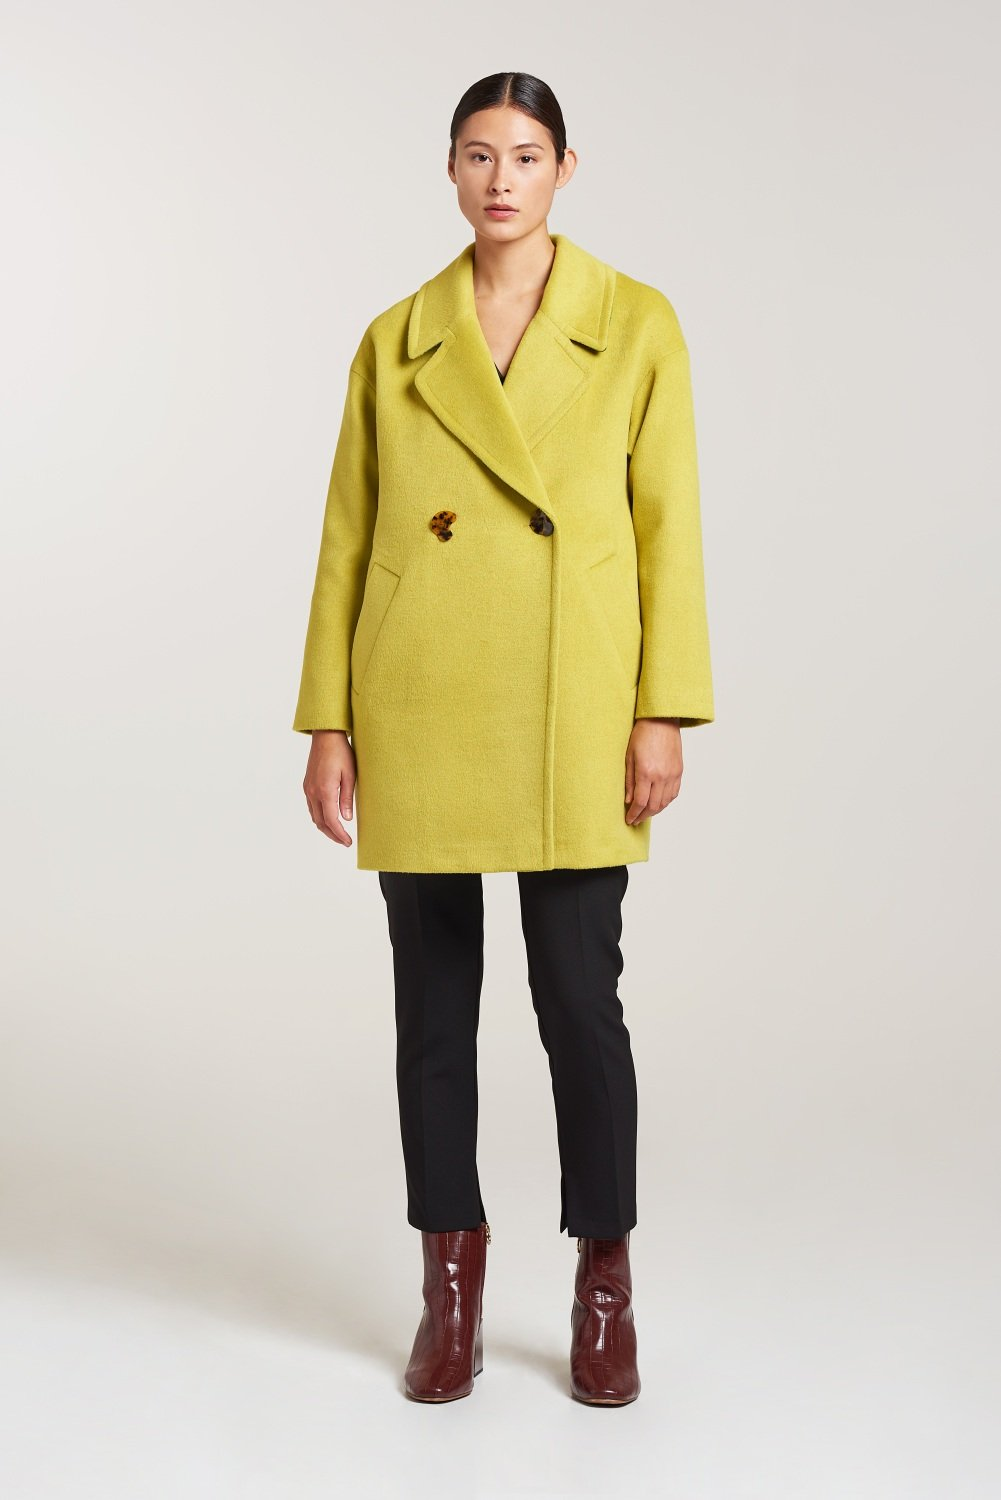 Palones Bright Lime Drawn Finish Crombie